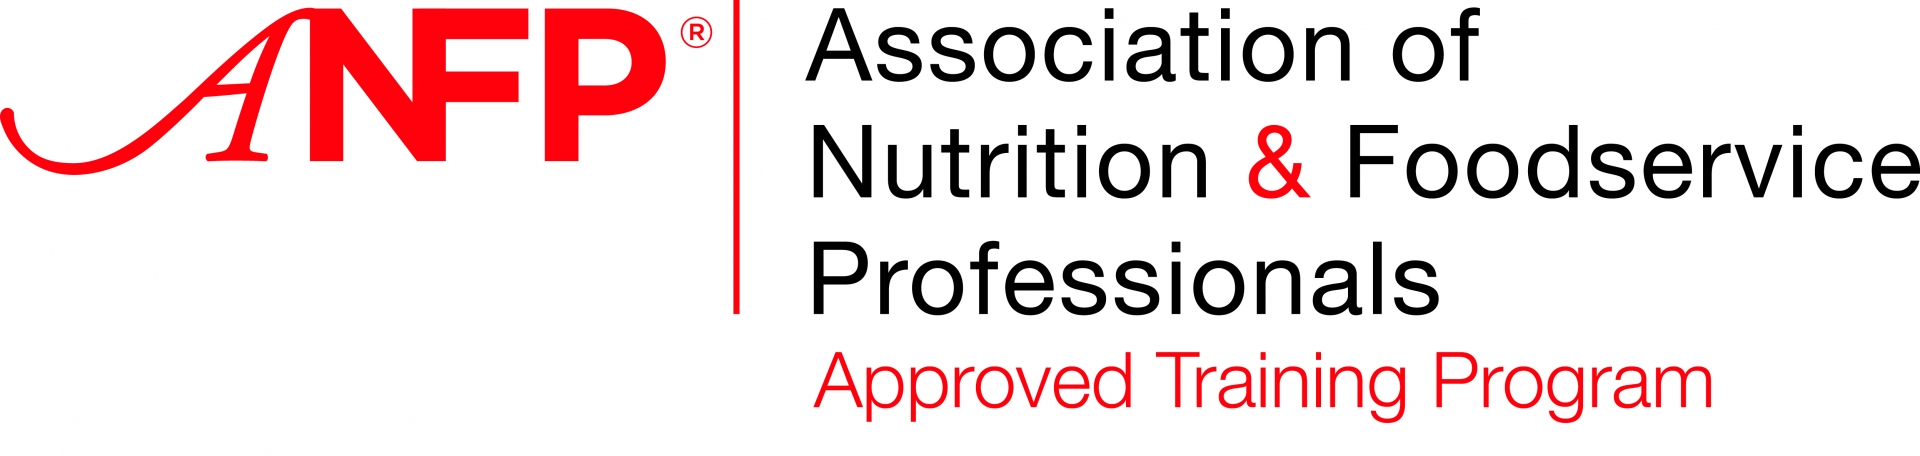 ANFP Approved Program